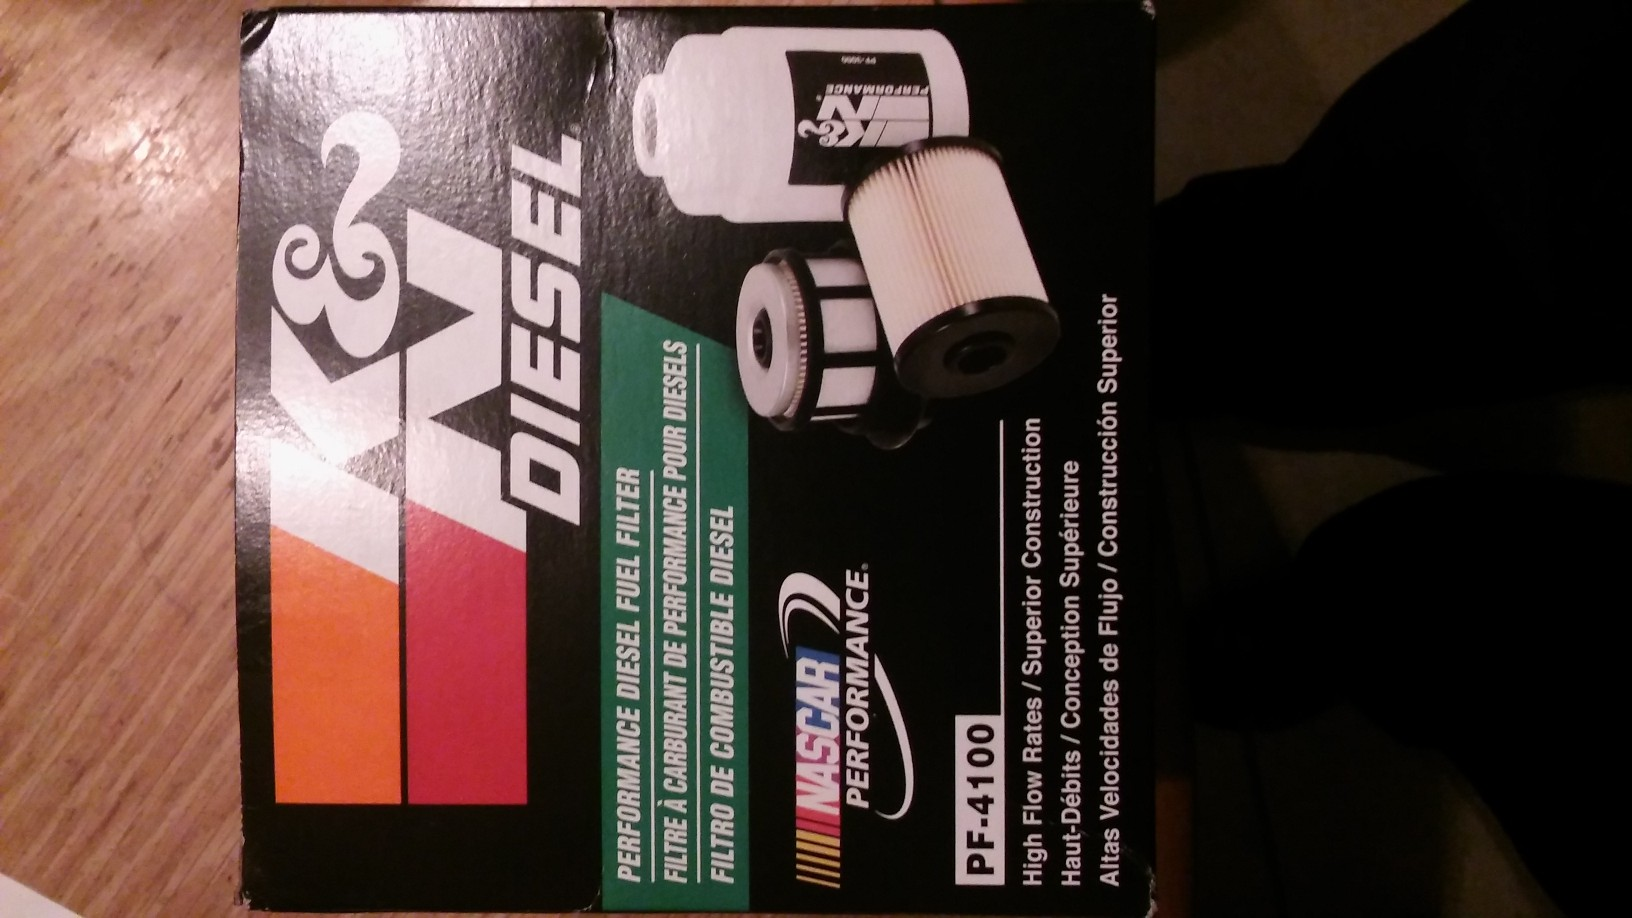 Attachments Ford Powerstroke Diesel Forum High Performance Fuel Filters 20160518 203042